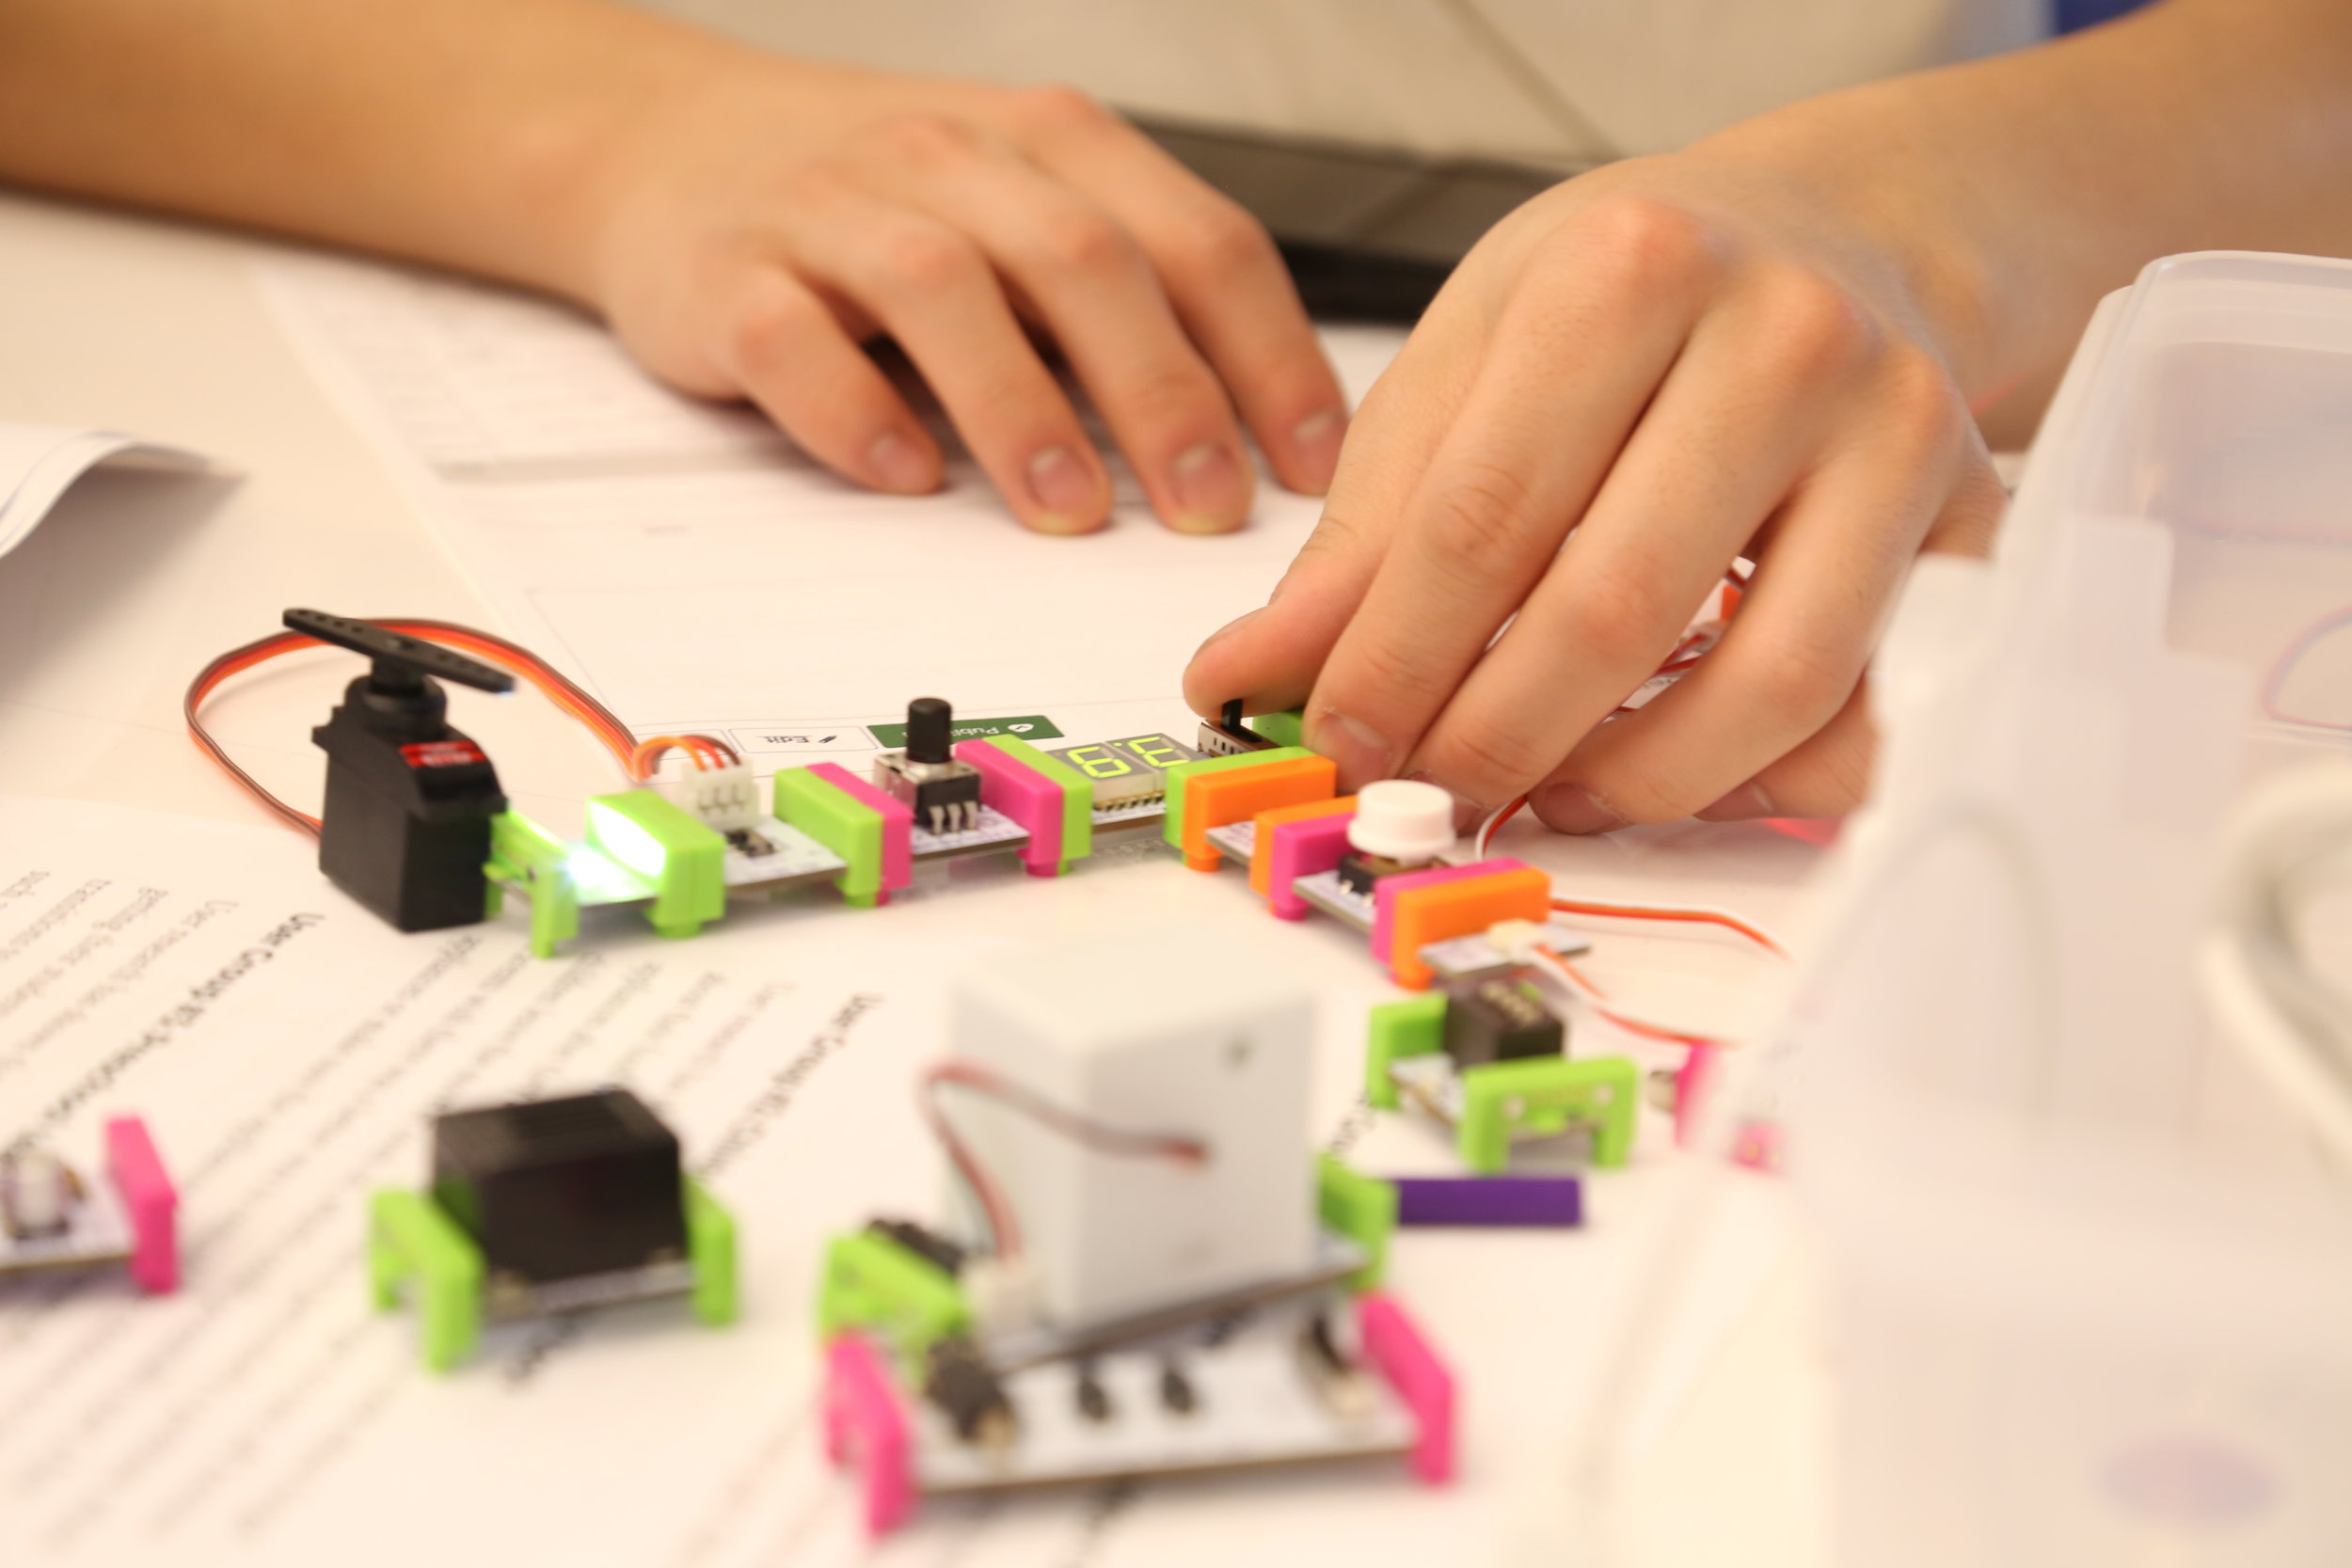 A student working on an in-class exercise from our week on rapid physical prototyping.